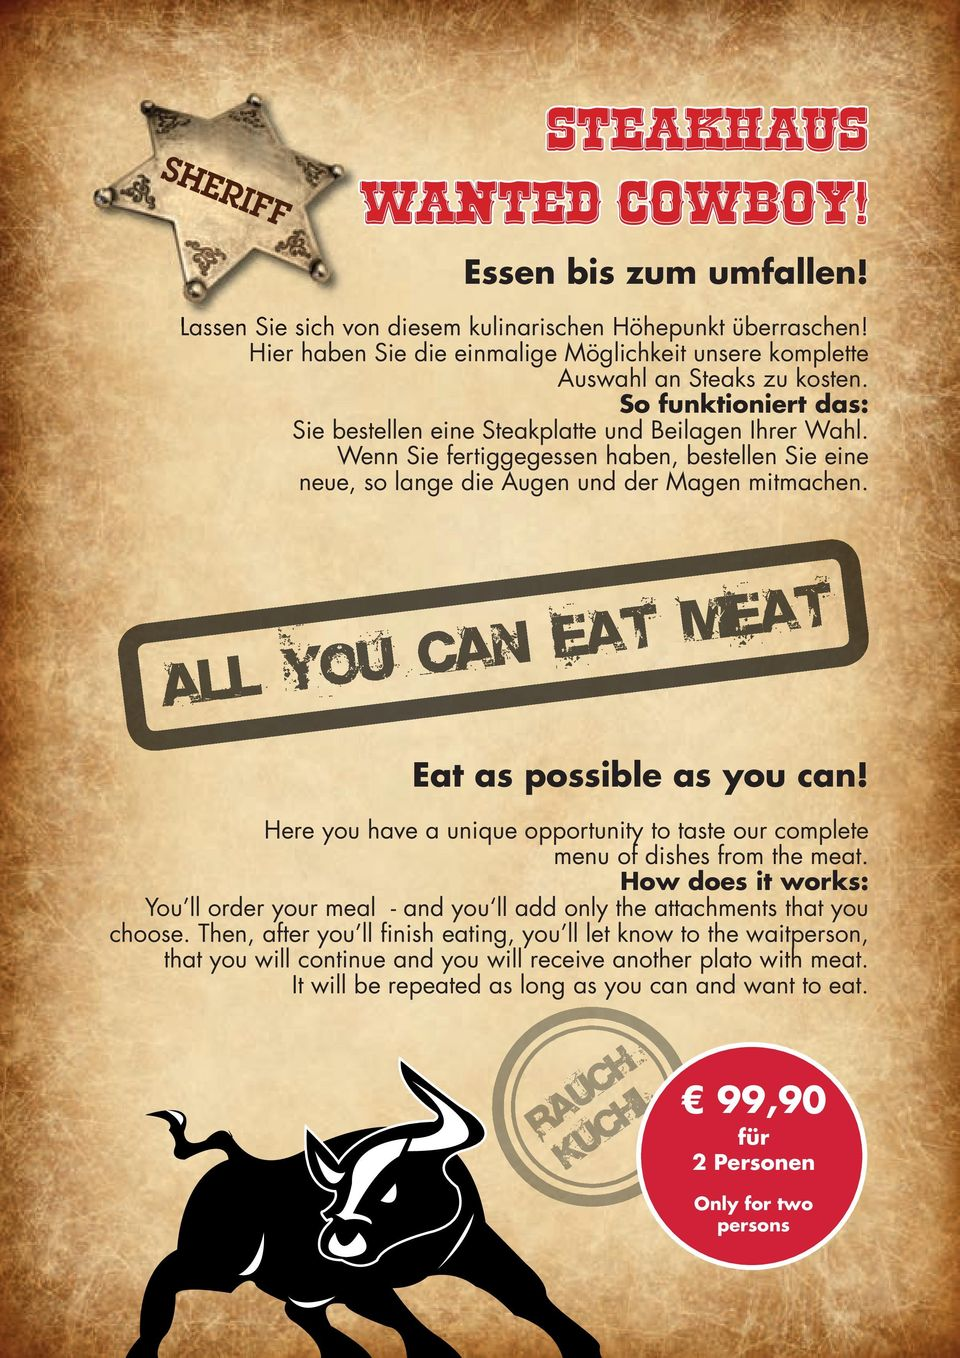 Eat as possible as you can! Here you have a unique opportunity to taste our complete menu of dishes from the meat.